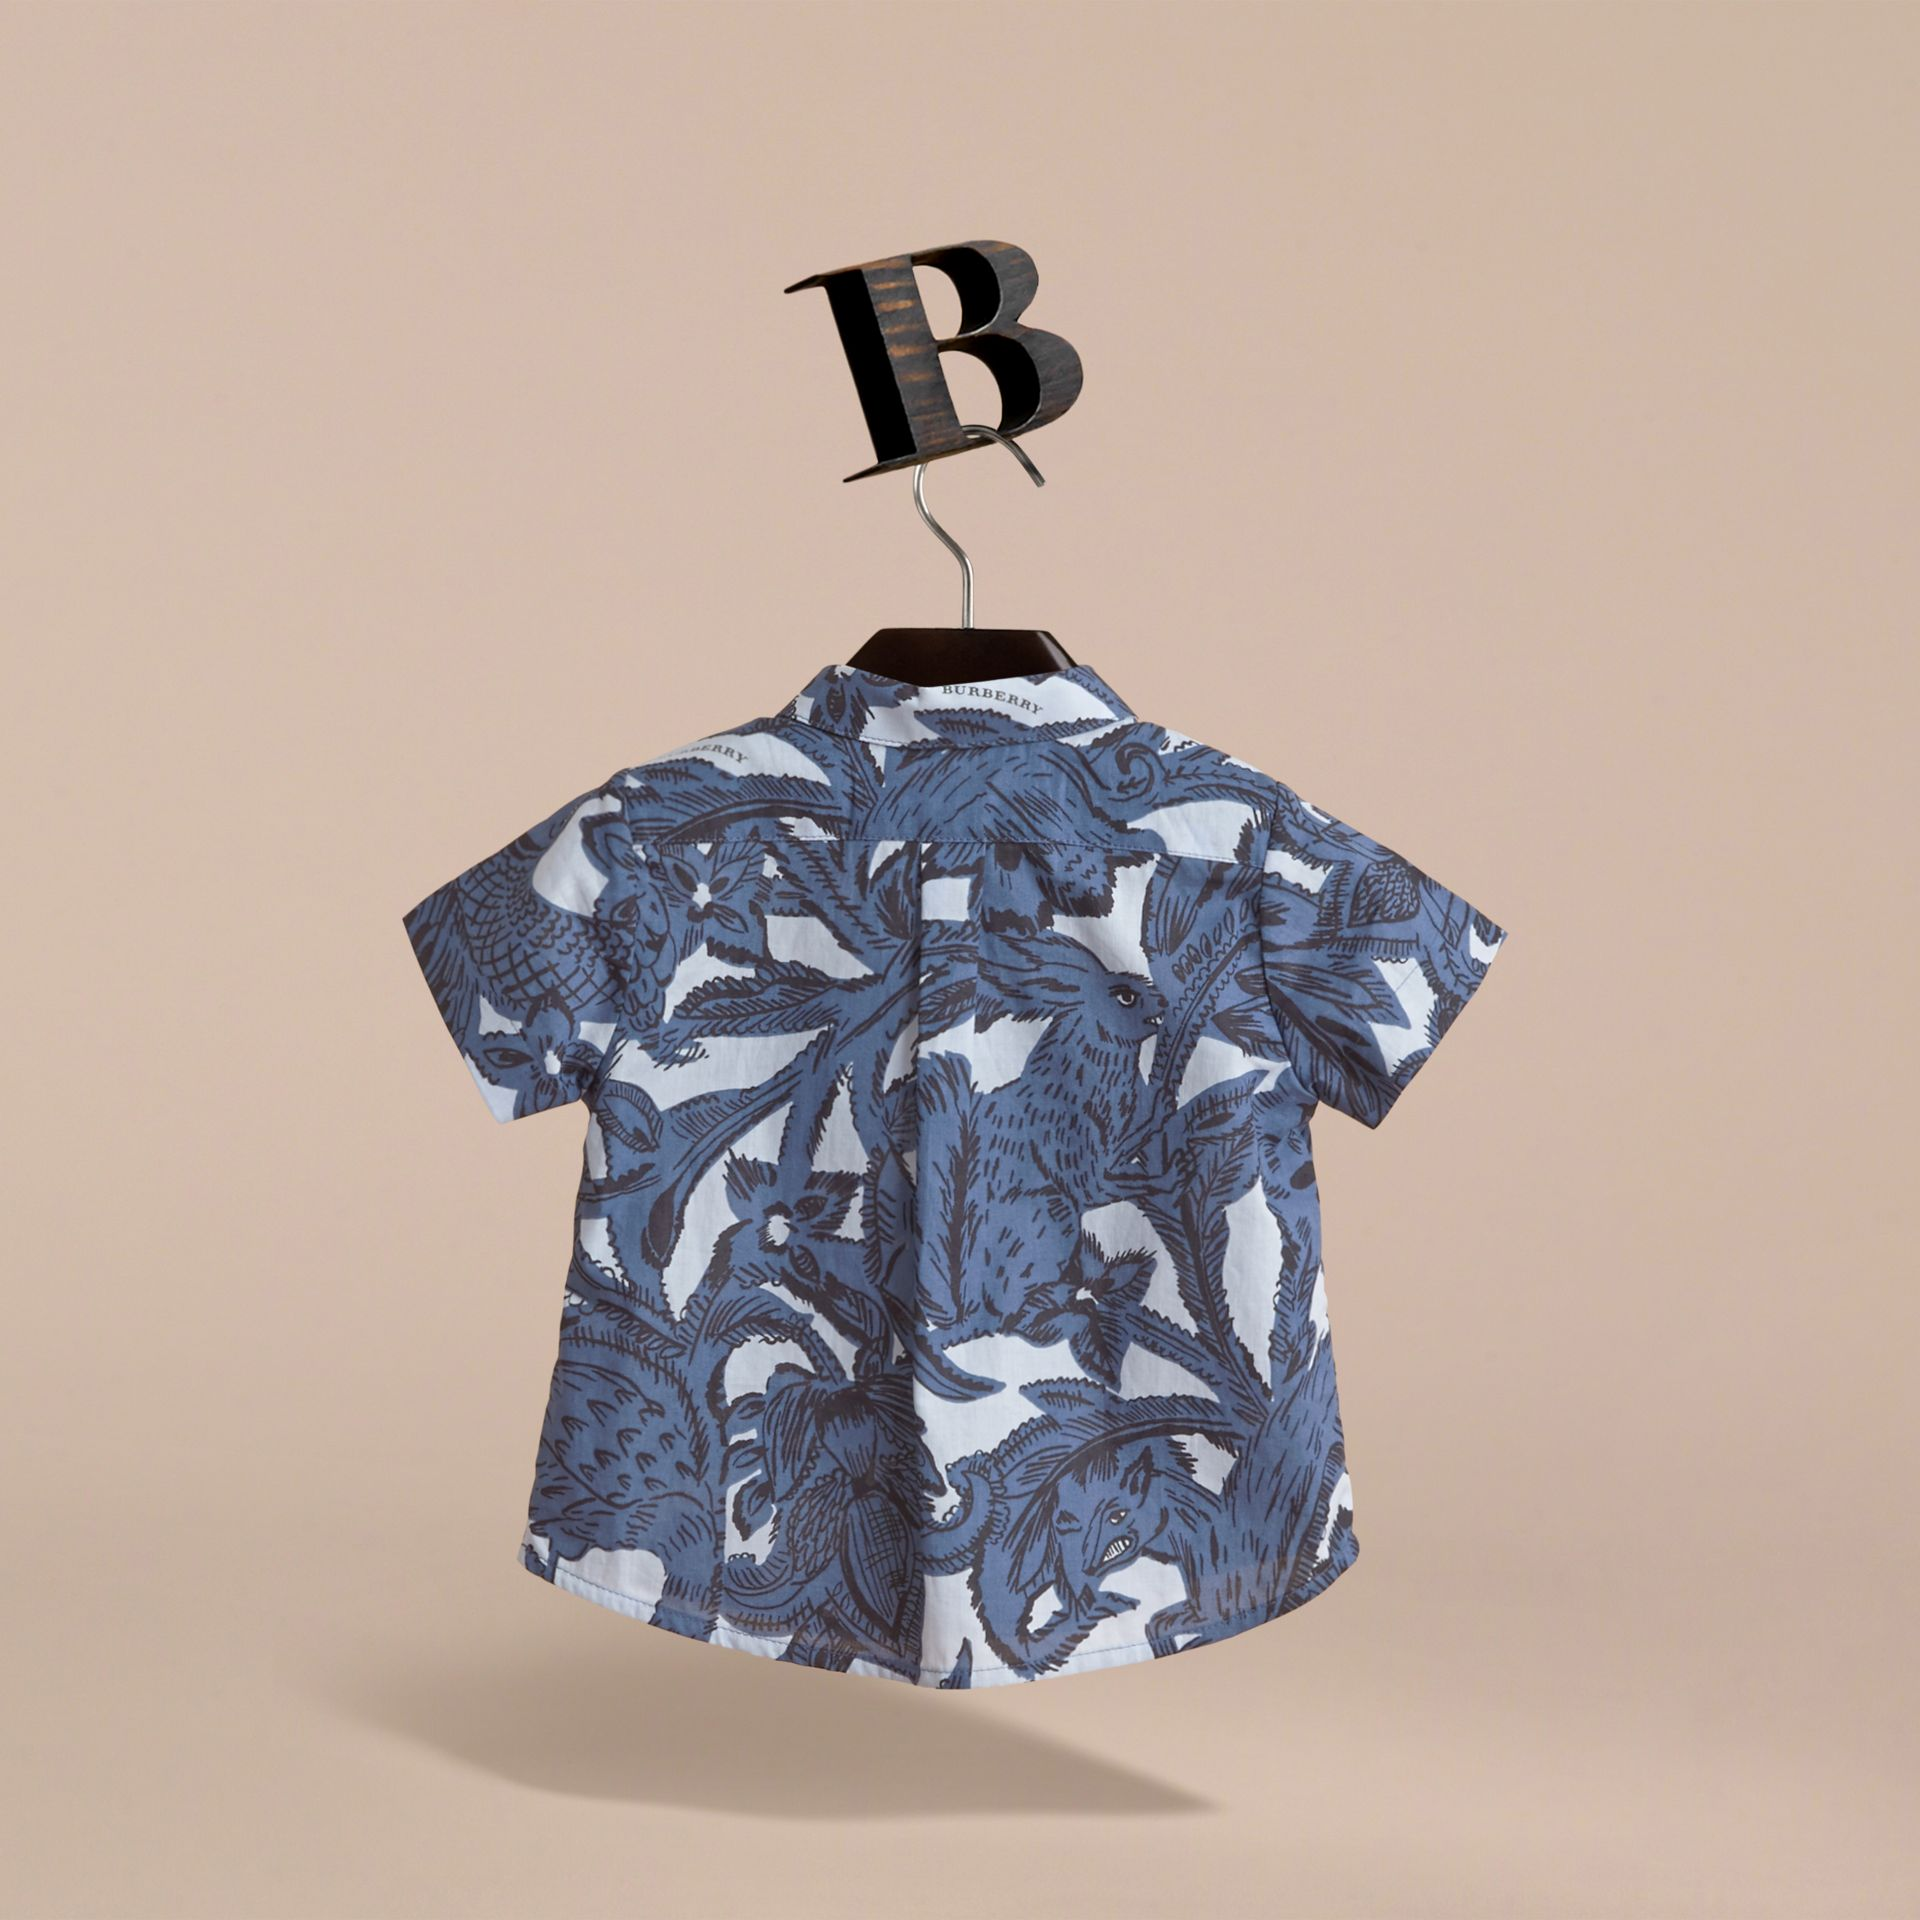 Short-sleeve Beasts Print Cotton Shirt | Burberry Australia - gallery image 4